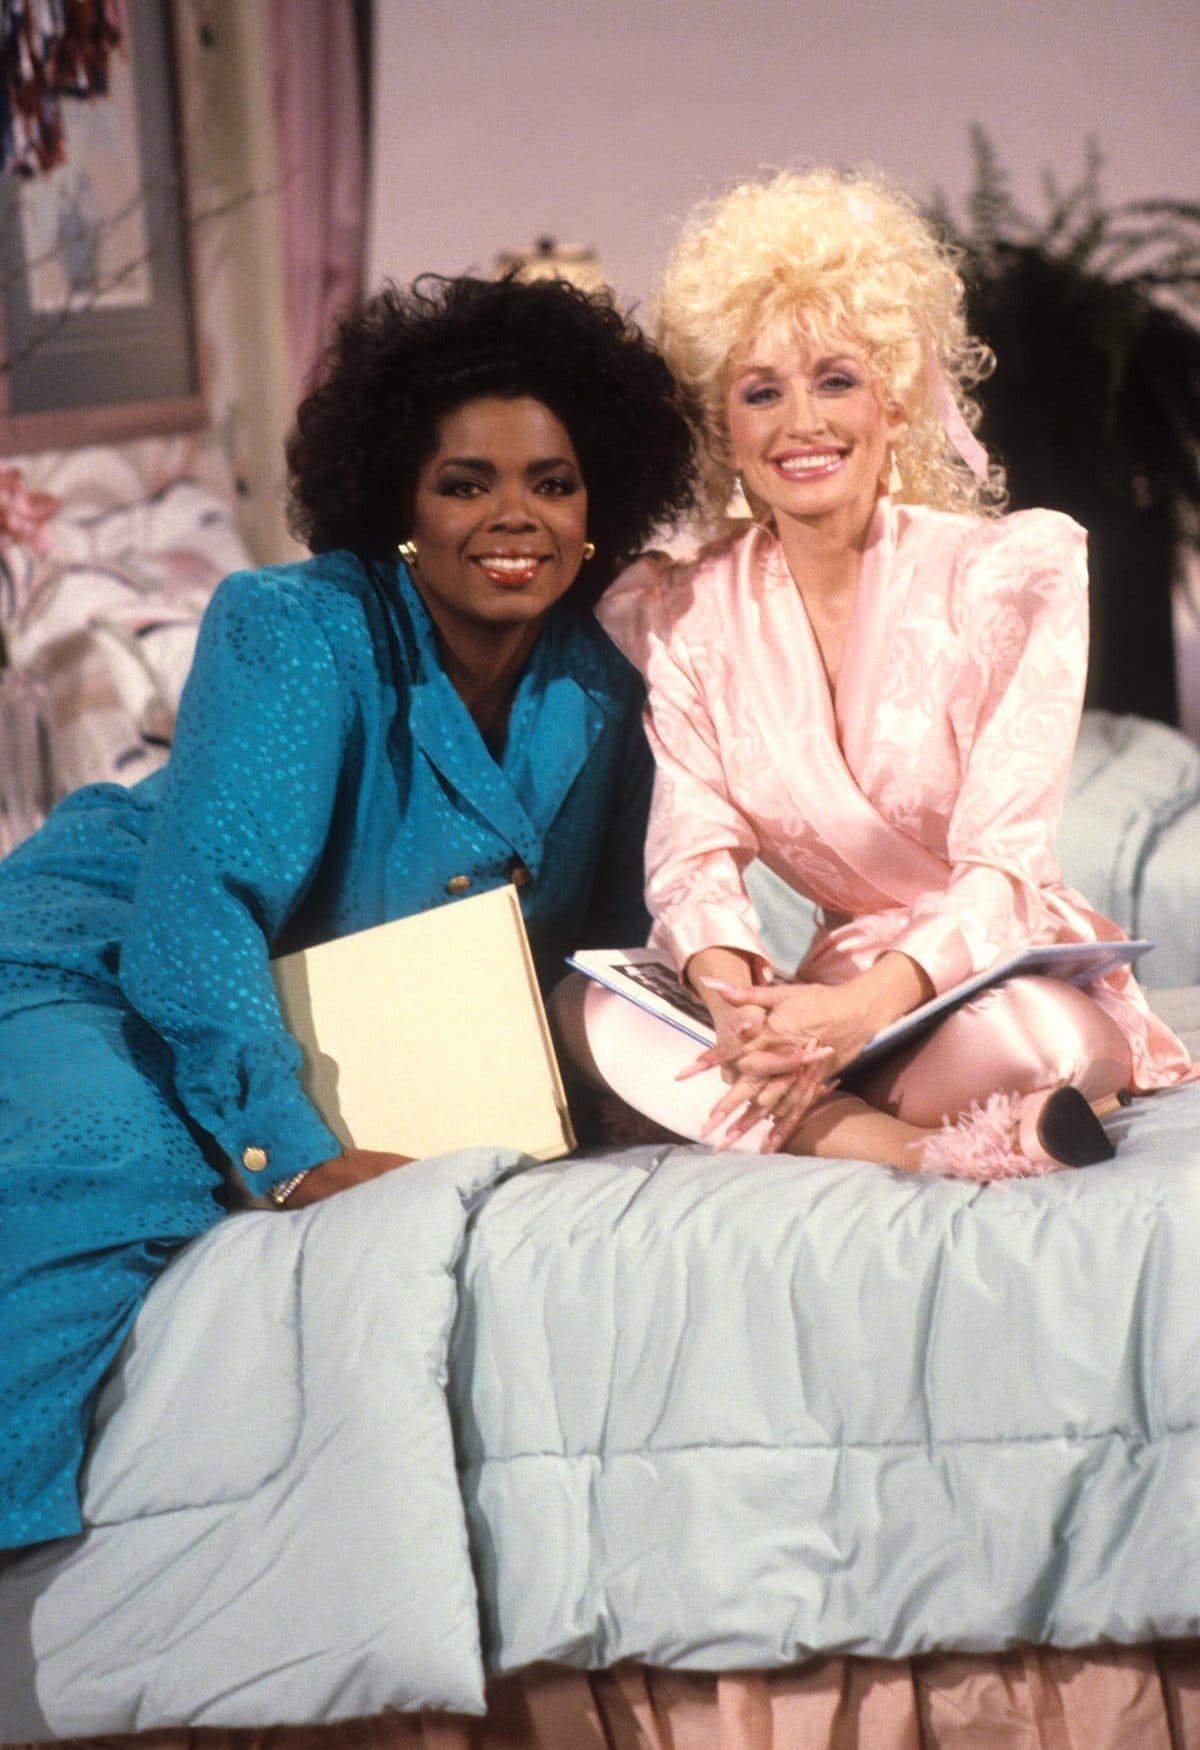 Oprah Winfrey and Dolly Parton on the American variety show Dolly in 1987